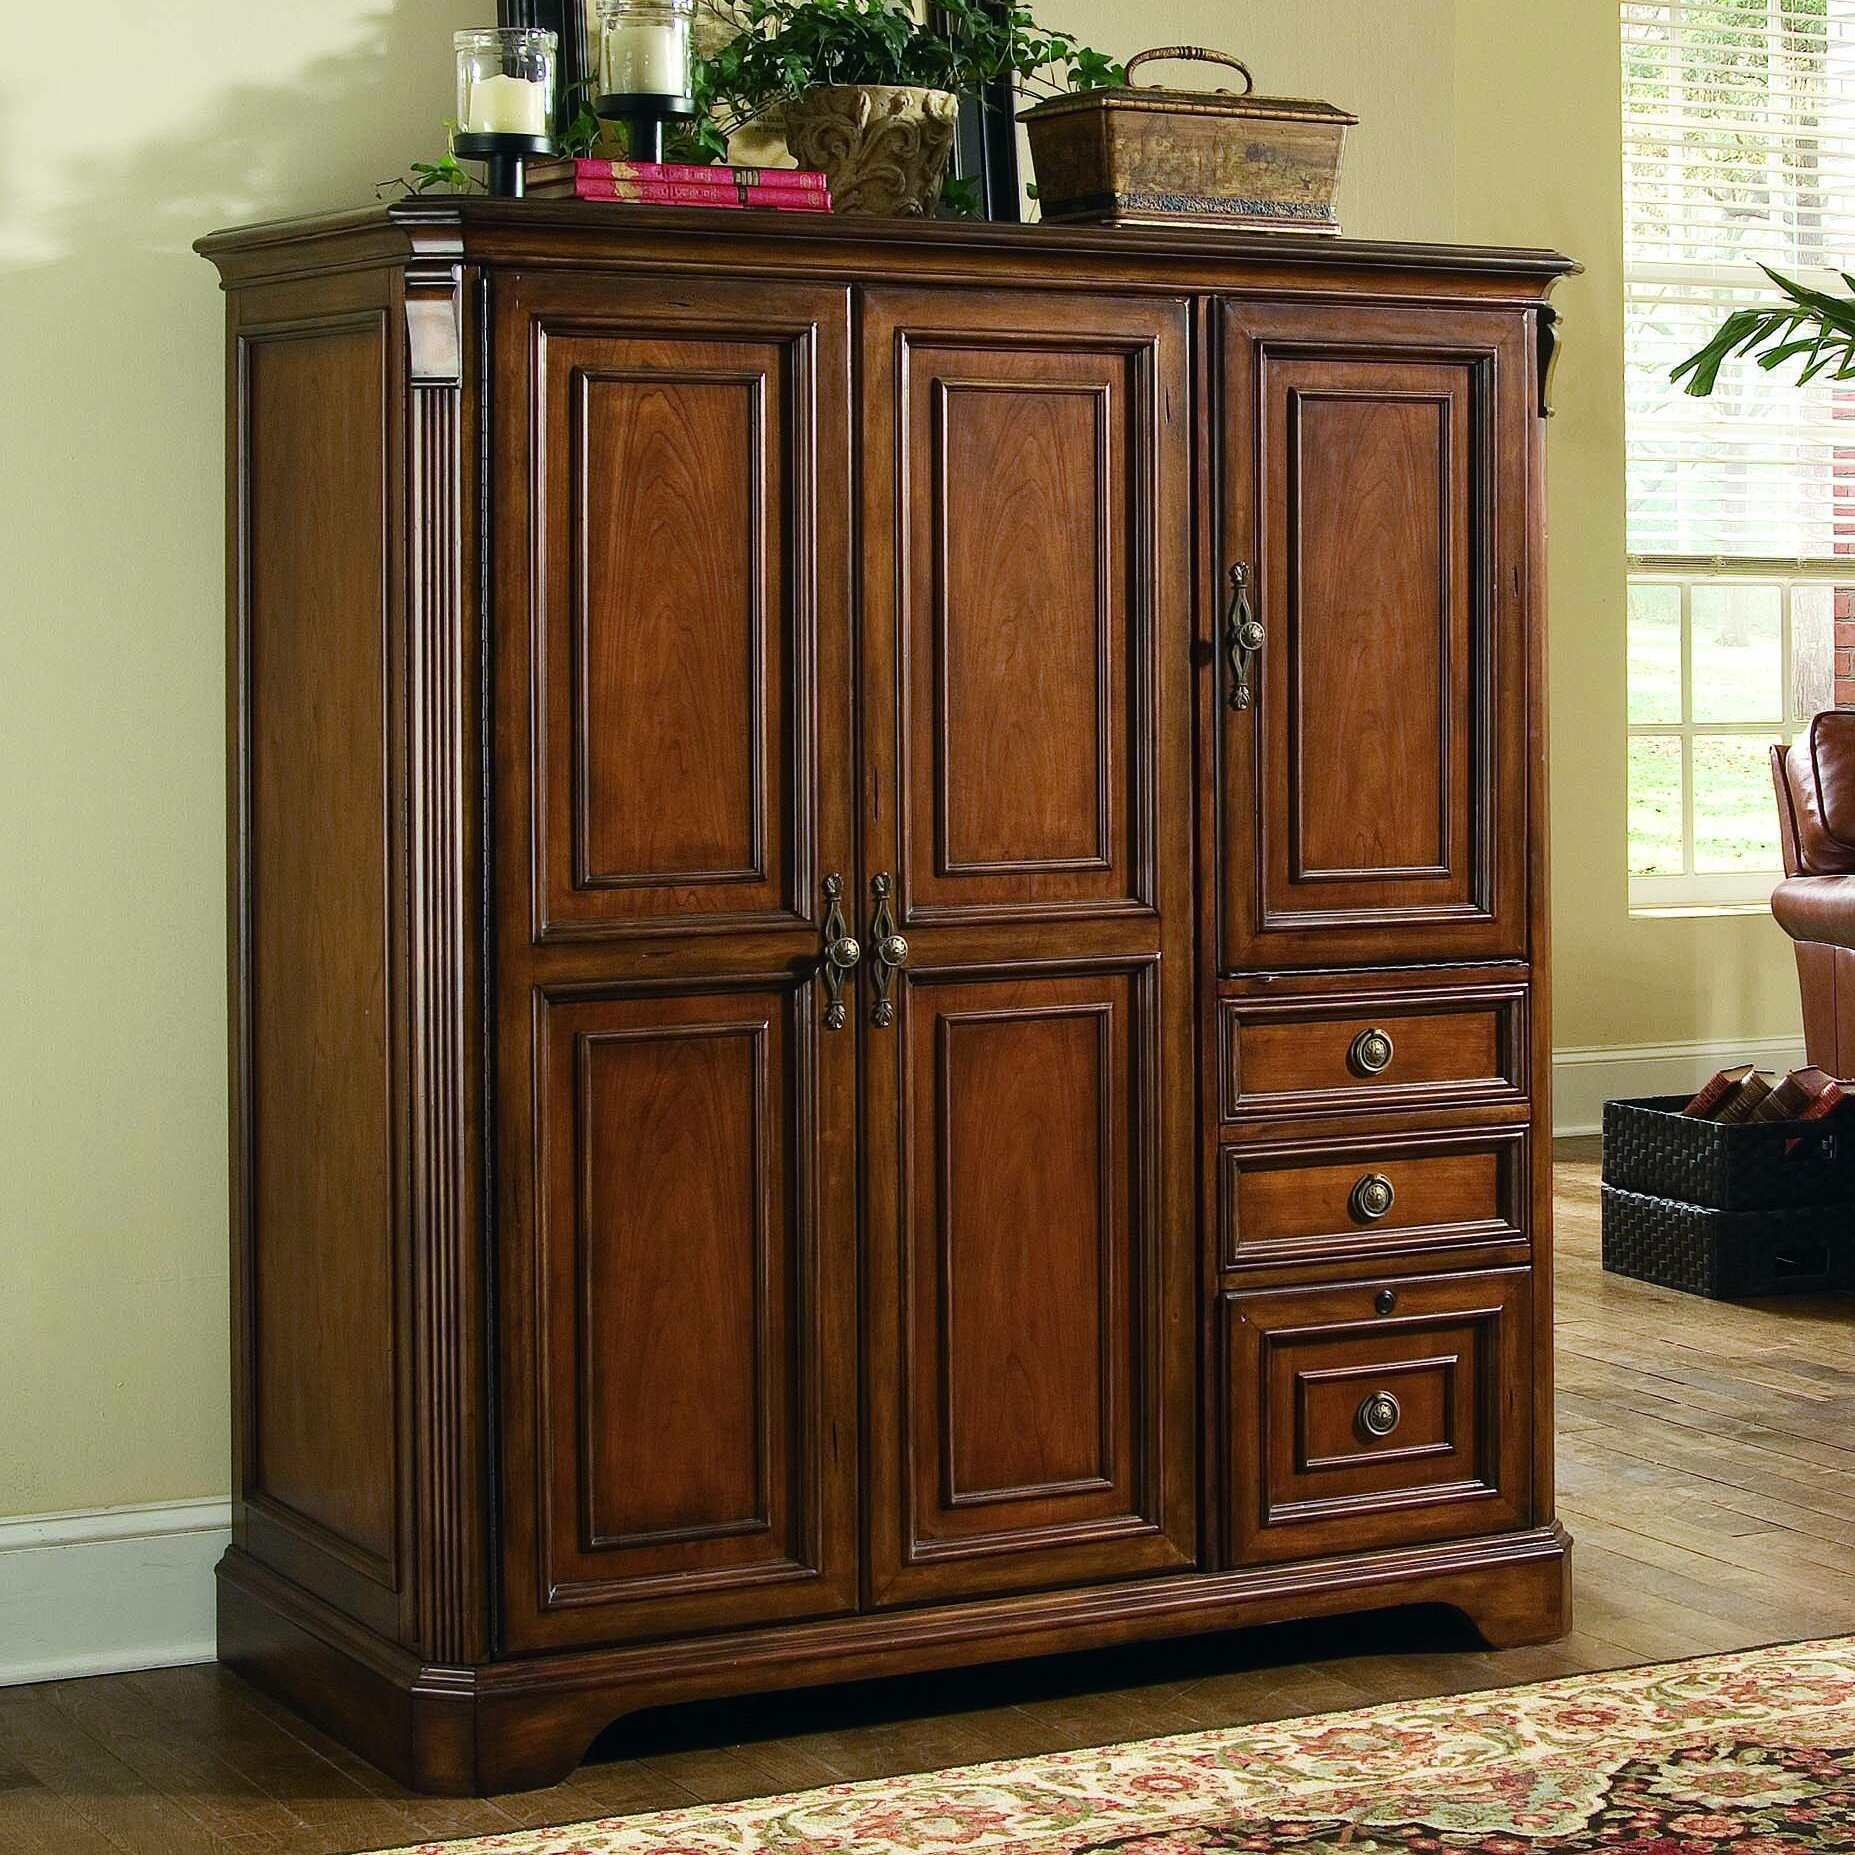 Desk Cabinet: Hooker Furniture Brookhaven Armoire Desk & Reviews